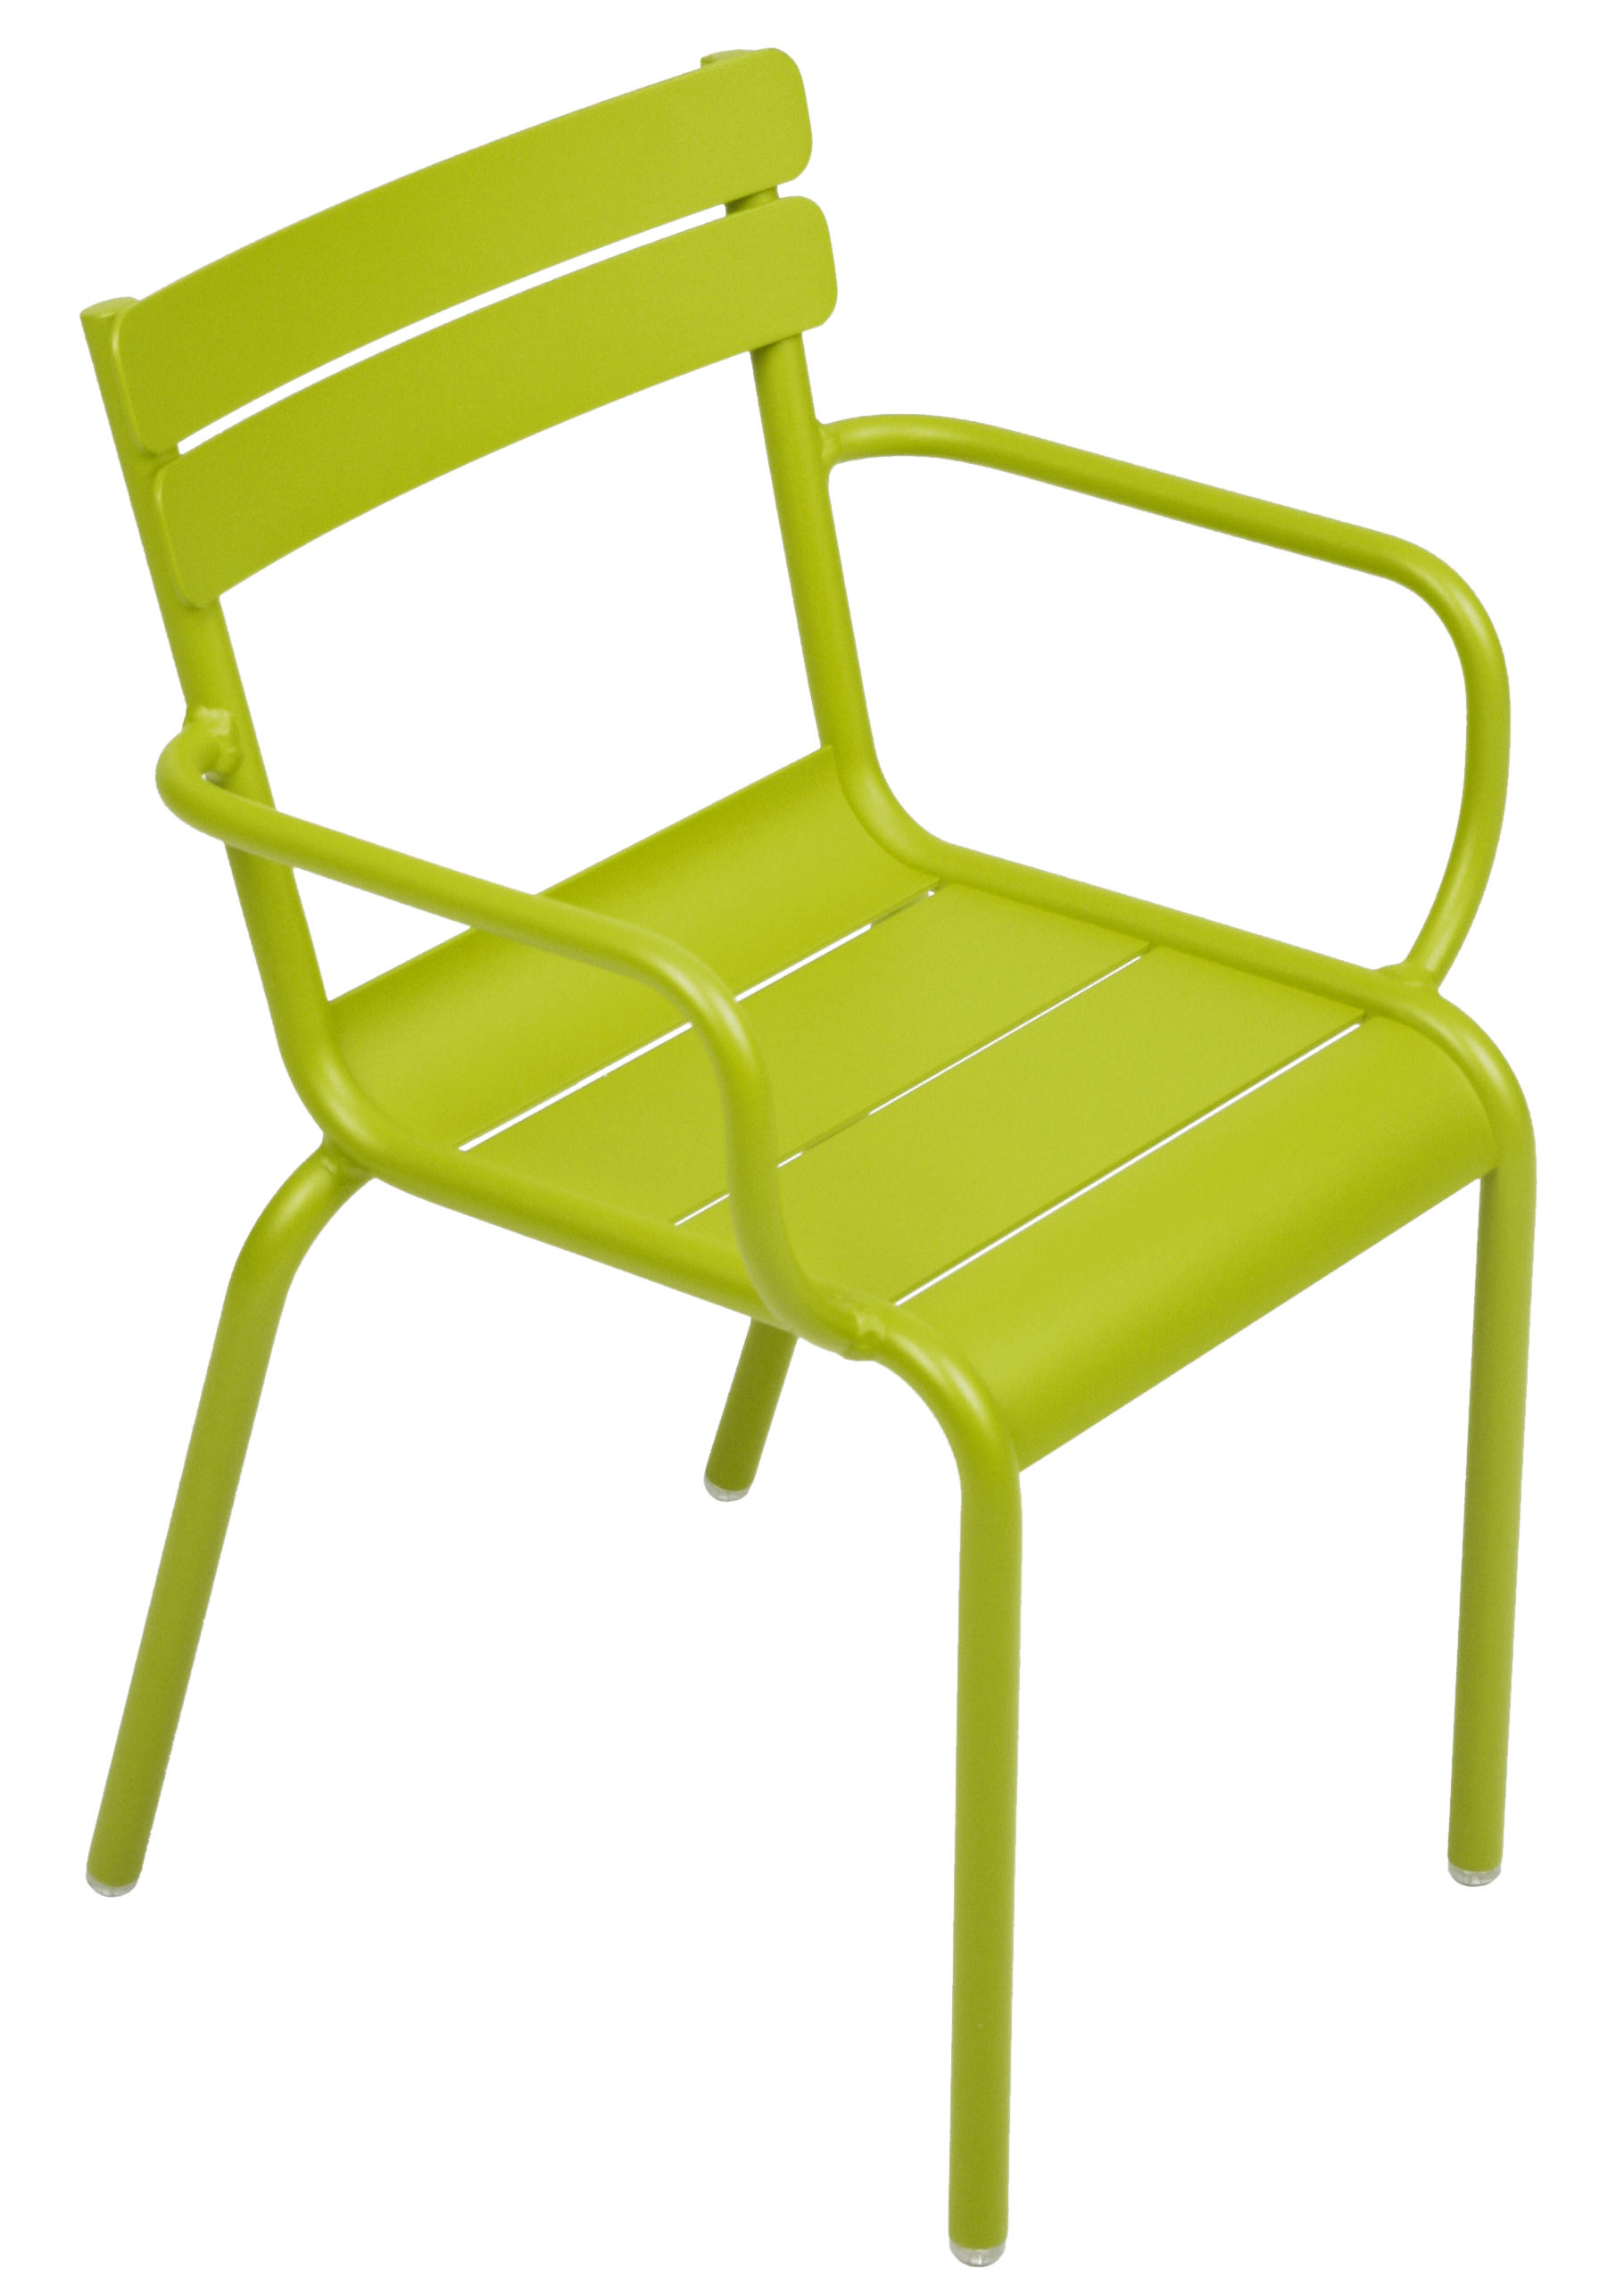 Furniture - Kids Furniture - Luxembourg Kid Children armchair by Fermob - Verbena Green - Lacquered aluminium